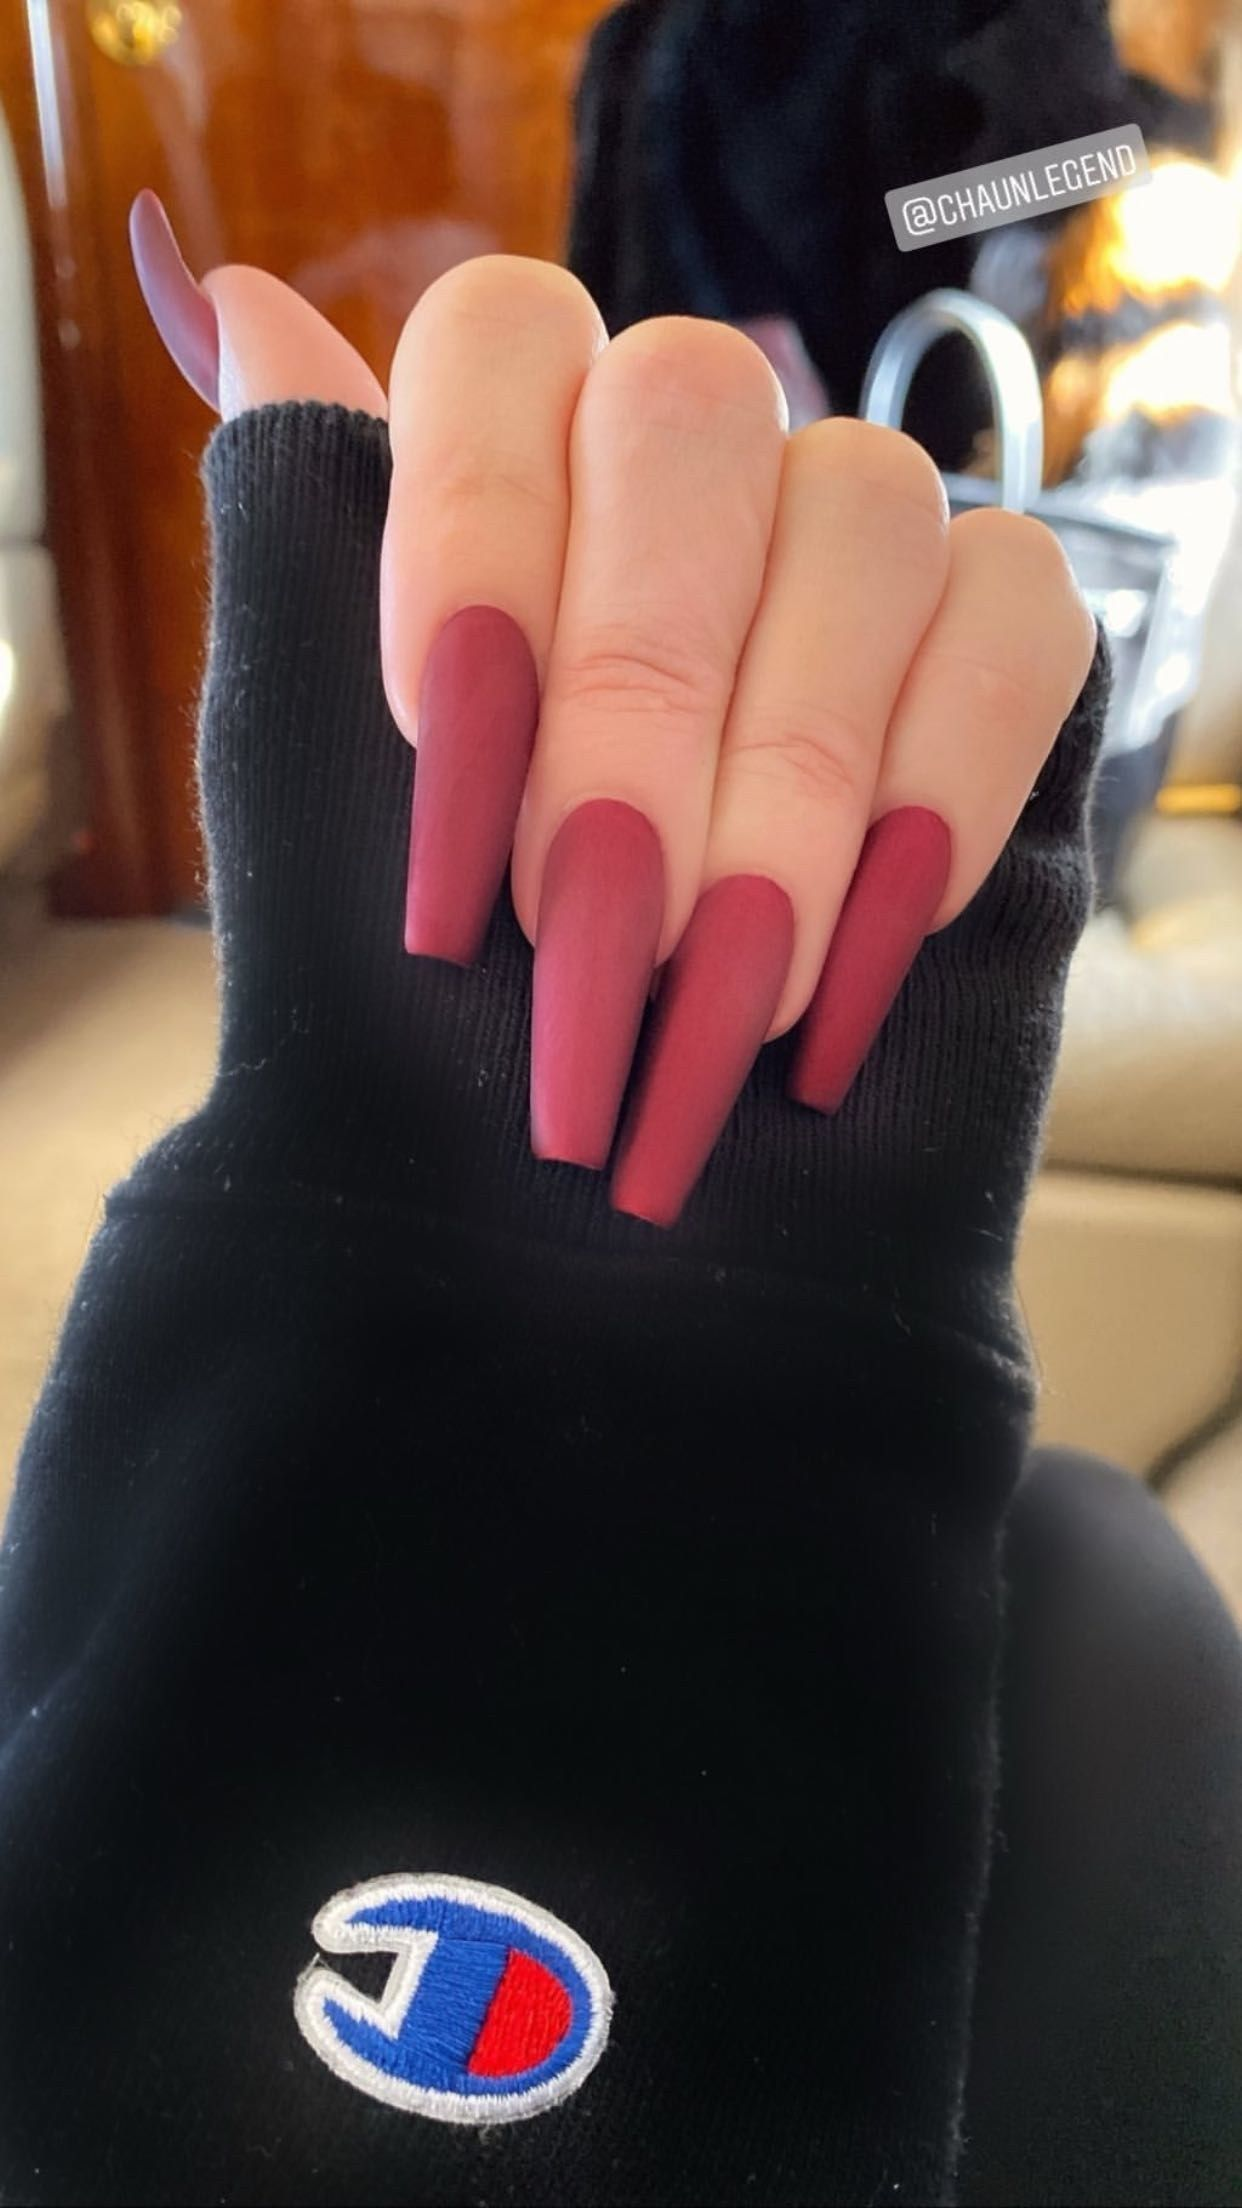 Khloé Kardashian's Velvet Chrome Manicure Is Surprisingly Easy to Do